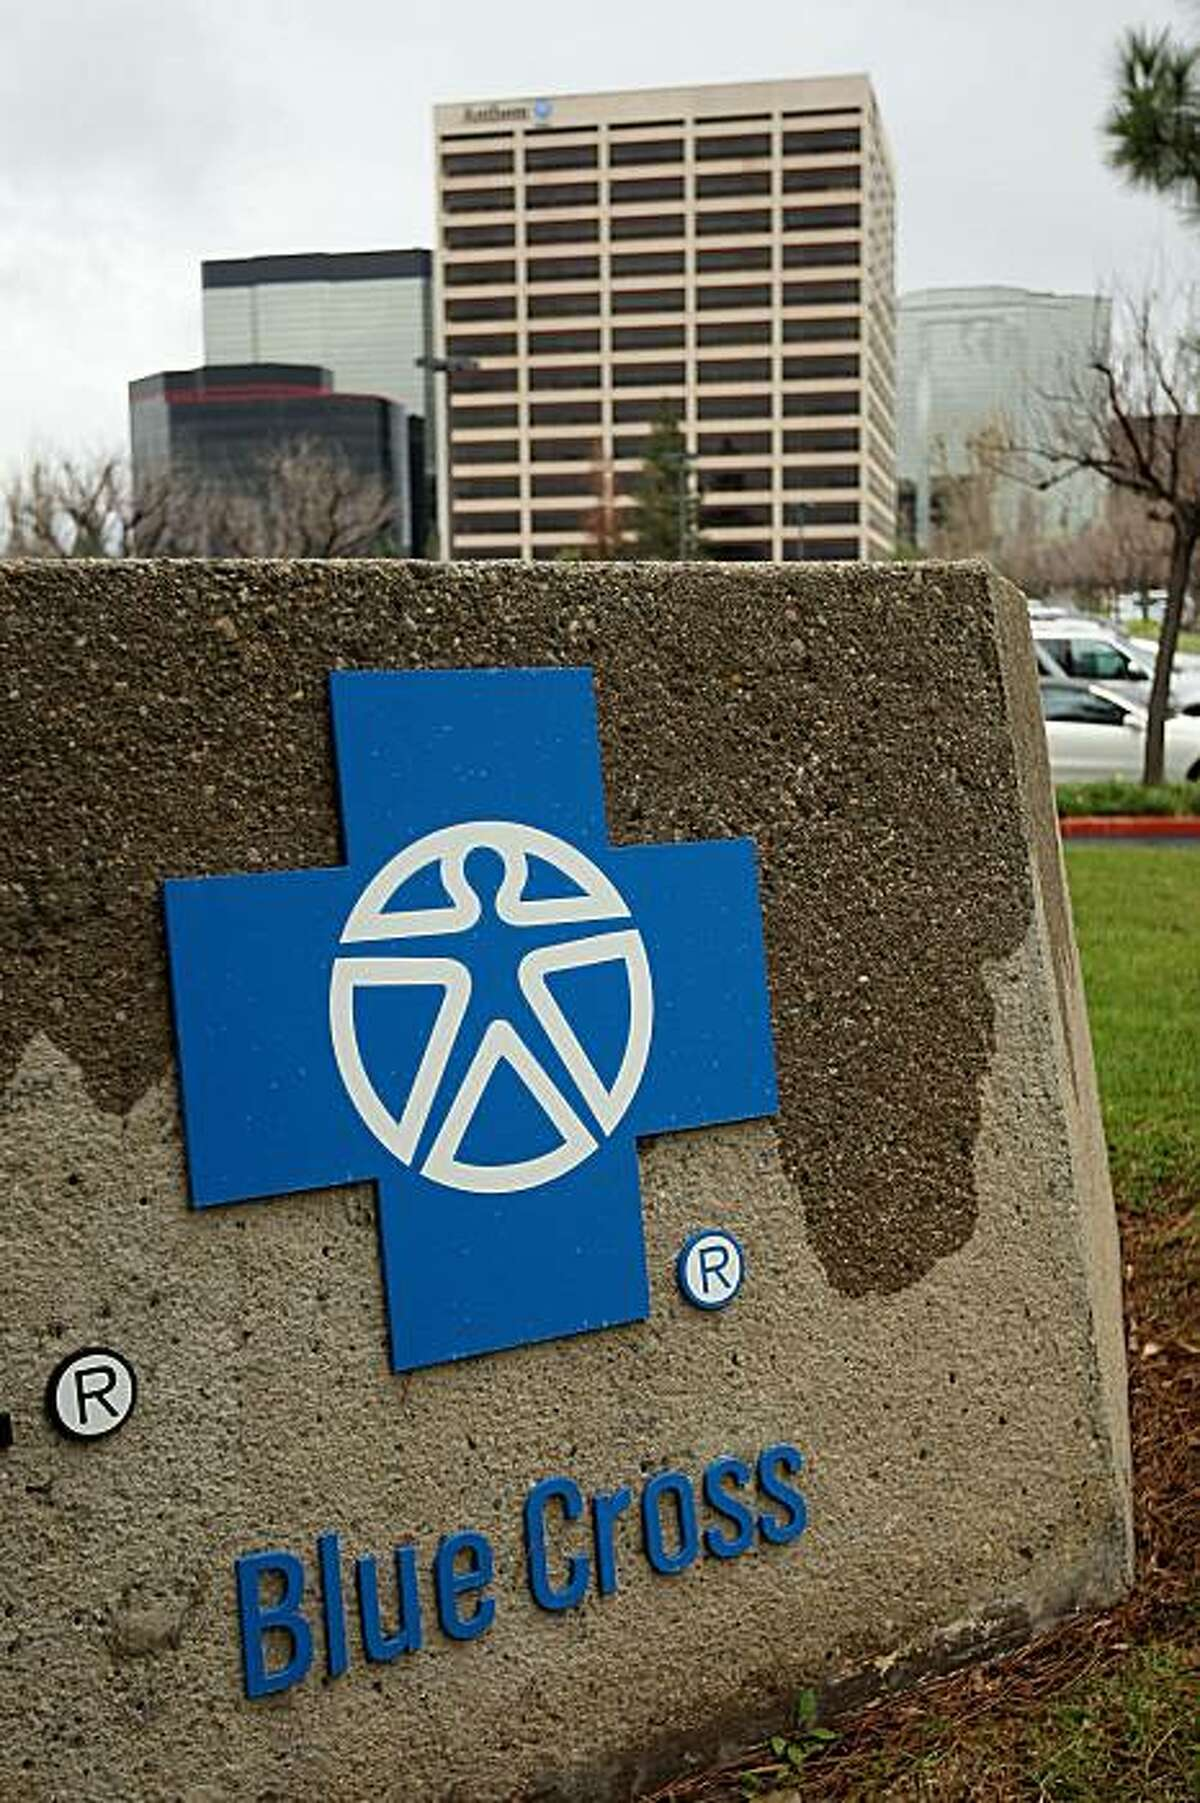 The Anthem Blue Cross headquarters is seen after the health insurer began informing its individual policyholders of rate hikes up to 39 percent to take effect at the beginning of March in Woodland Hills, California. Anthem Blue Cross, which has the highest number of individual customers in California, raised rates by as much as 68 percent in 2009. Health insurance companies in California can legally raise their rates at any time by as much and as they want.